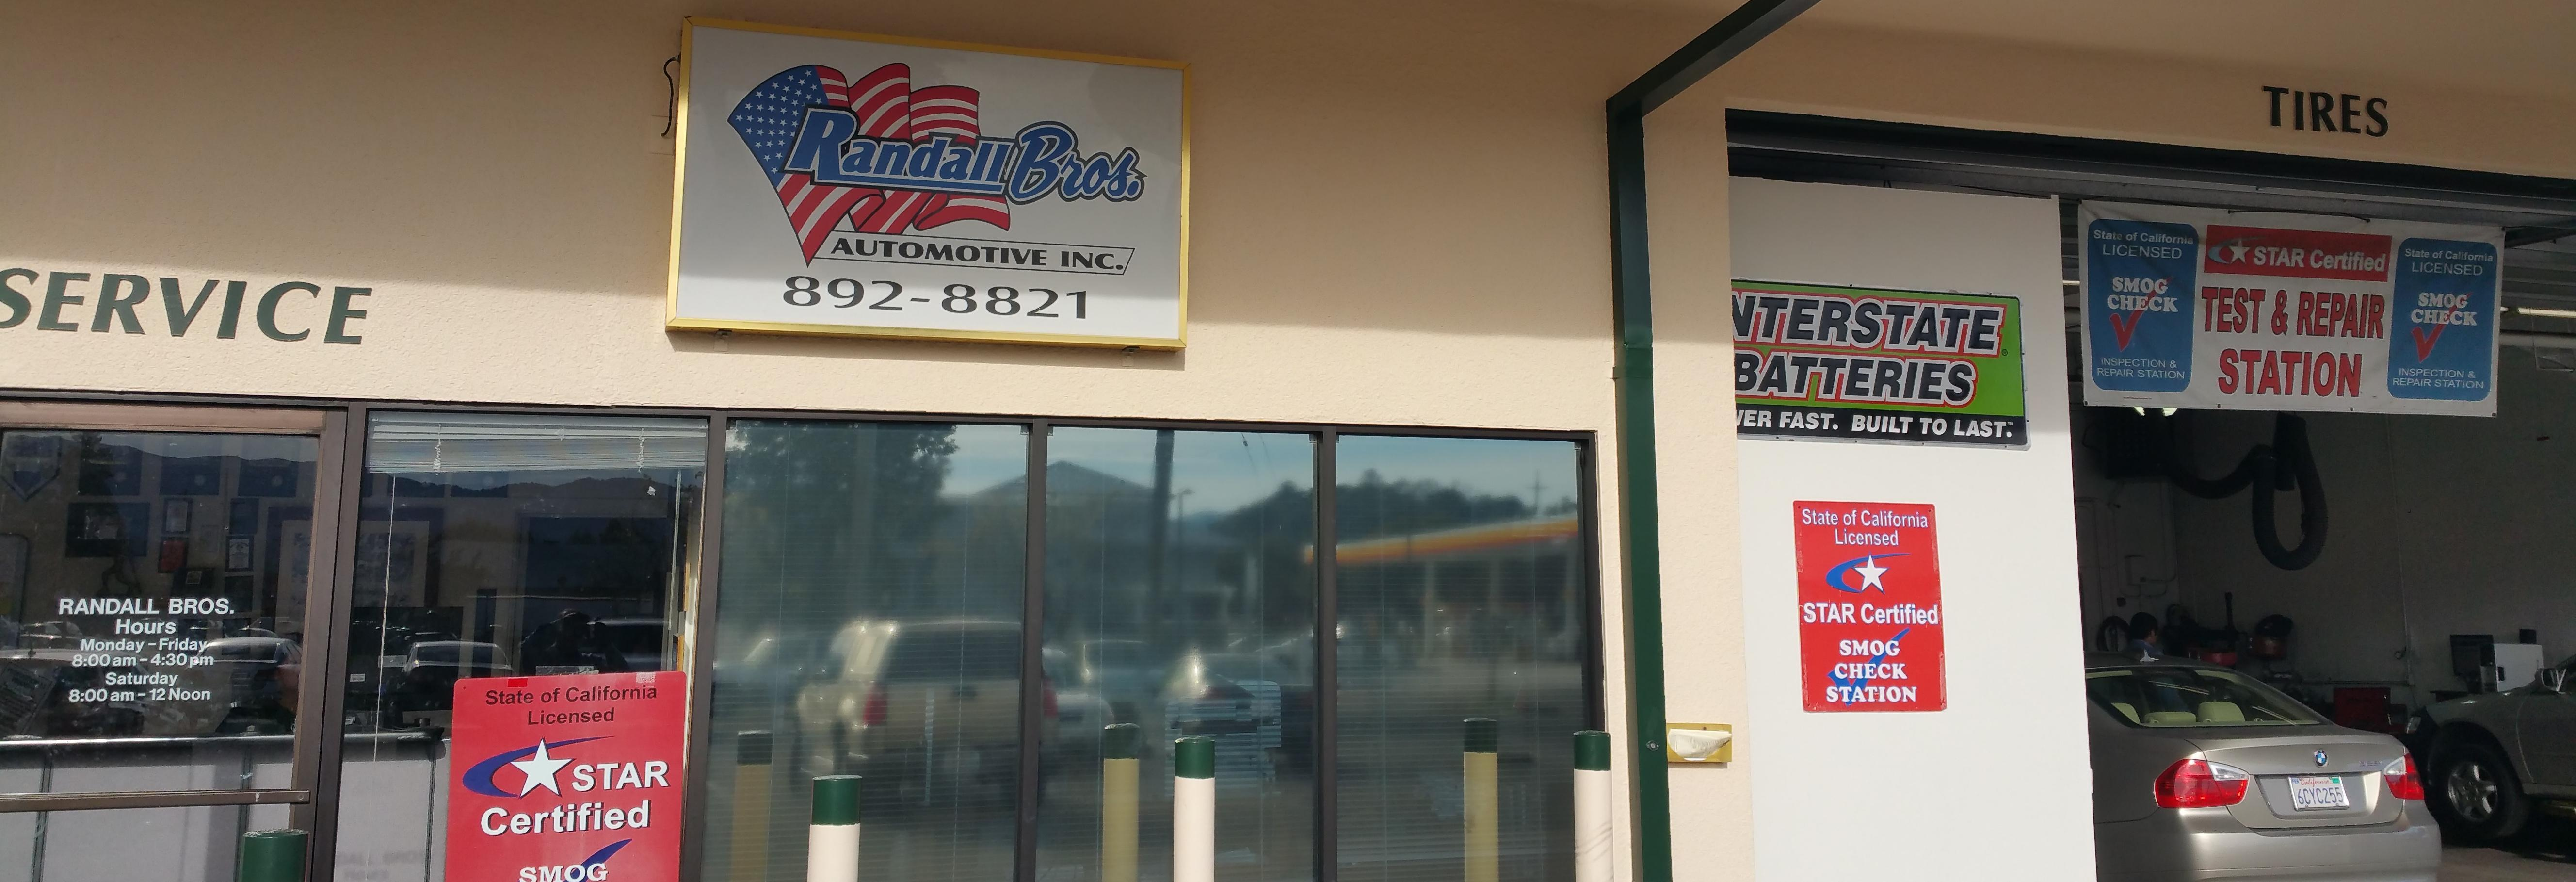 Randall Brothers Automotive in Novato, CA banner